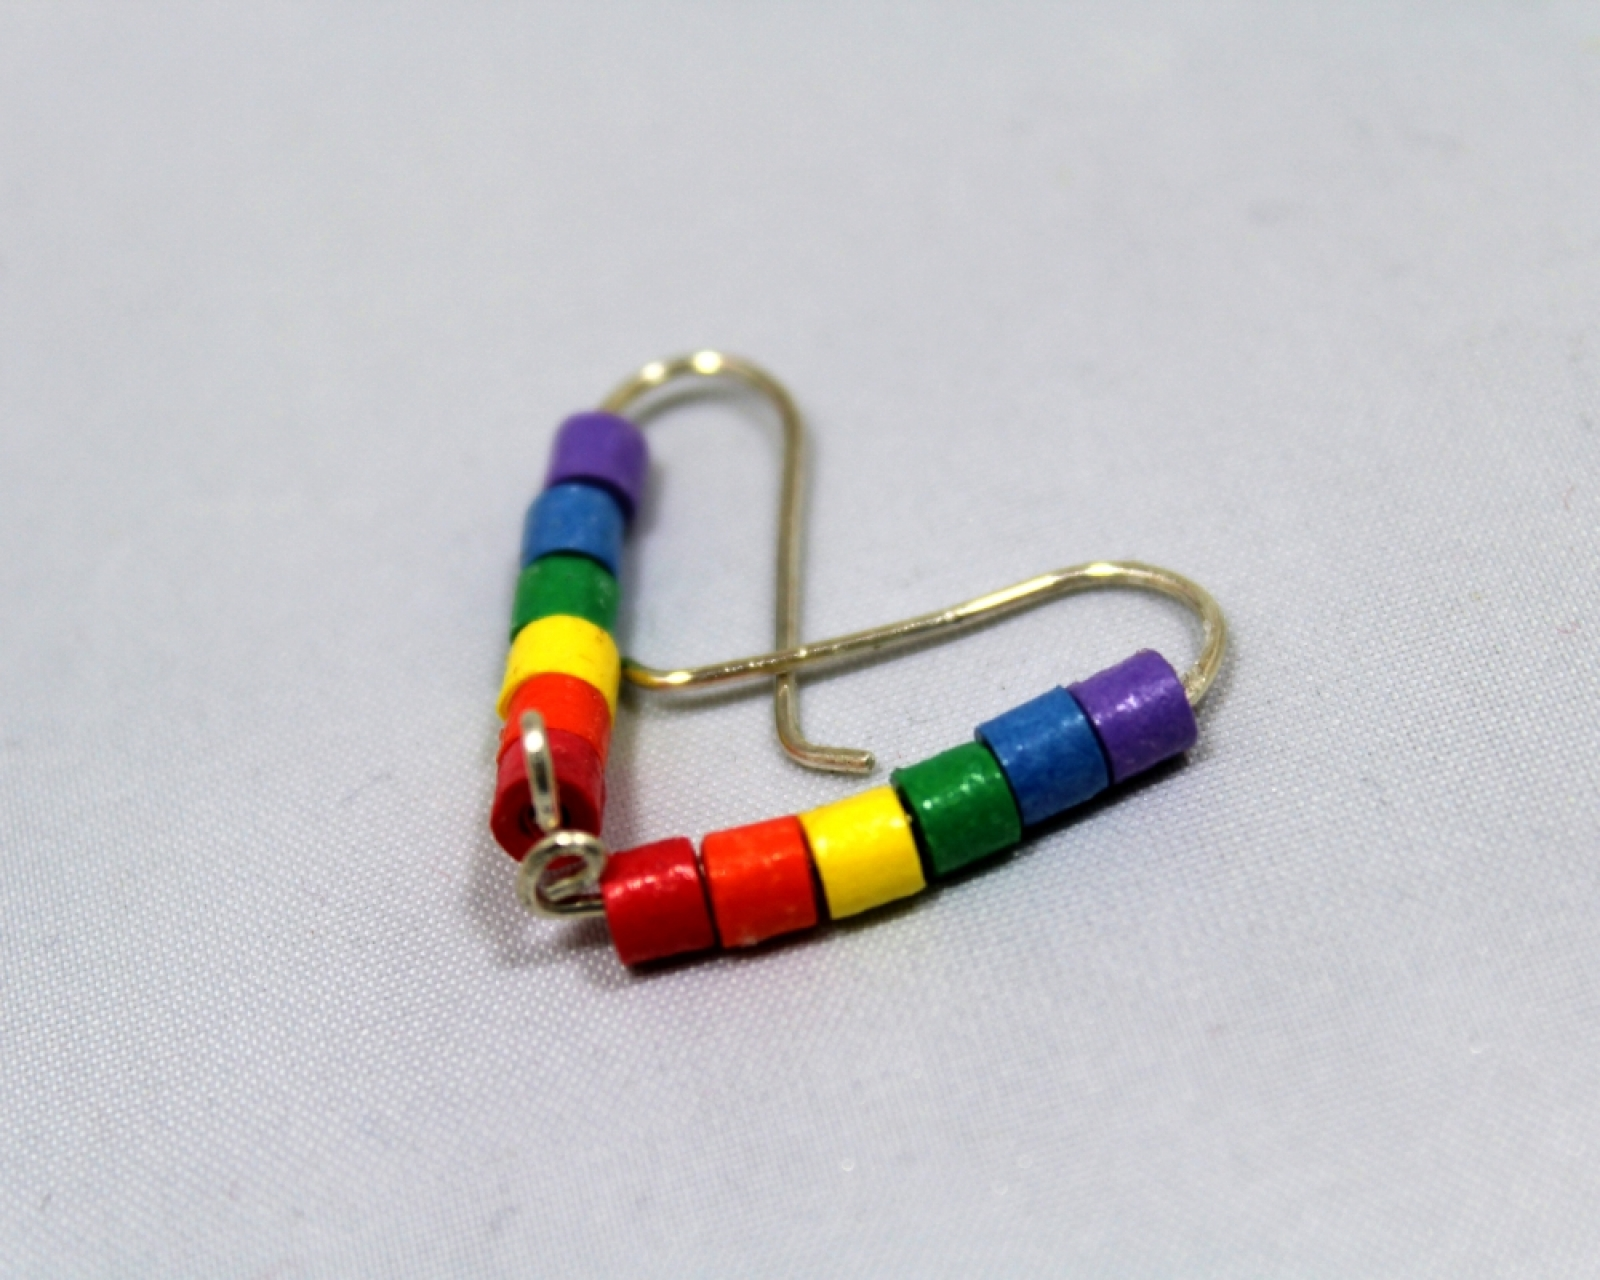 what side is the gay side for earrings